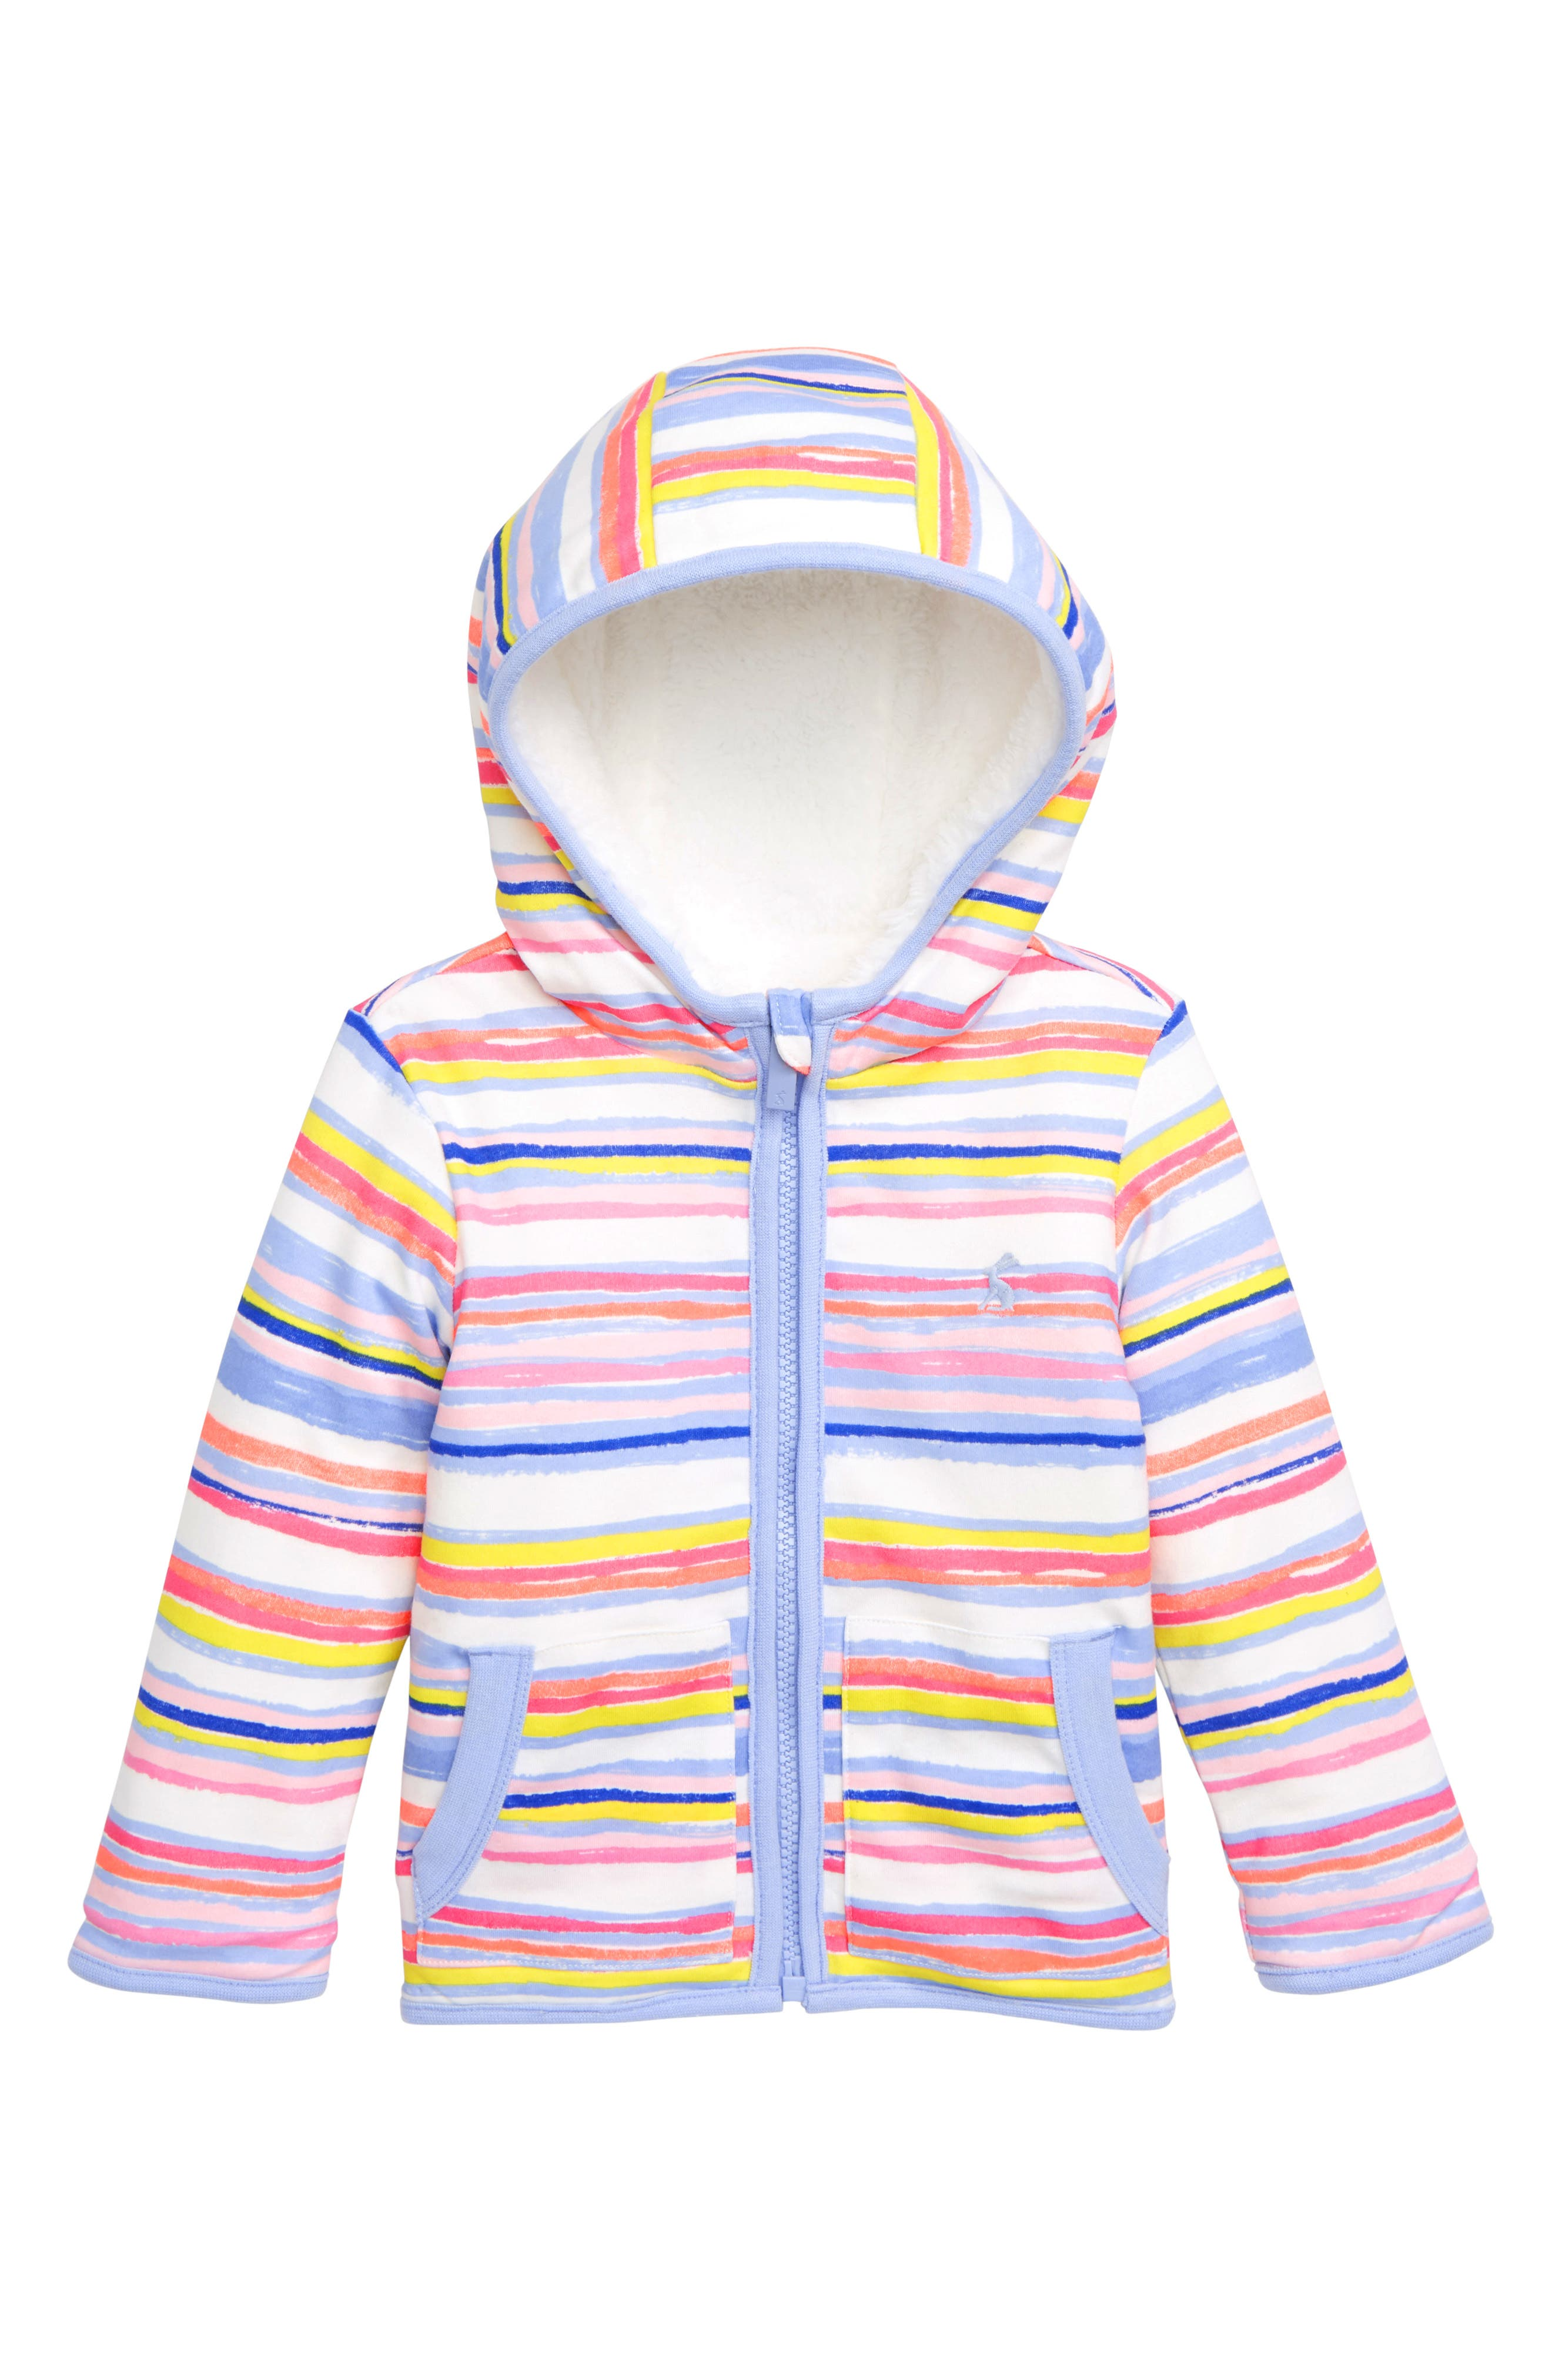 915ce56c8 joules baby | Compare Prices on GoSale.com